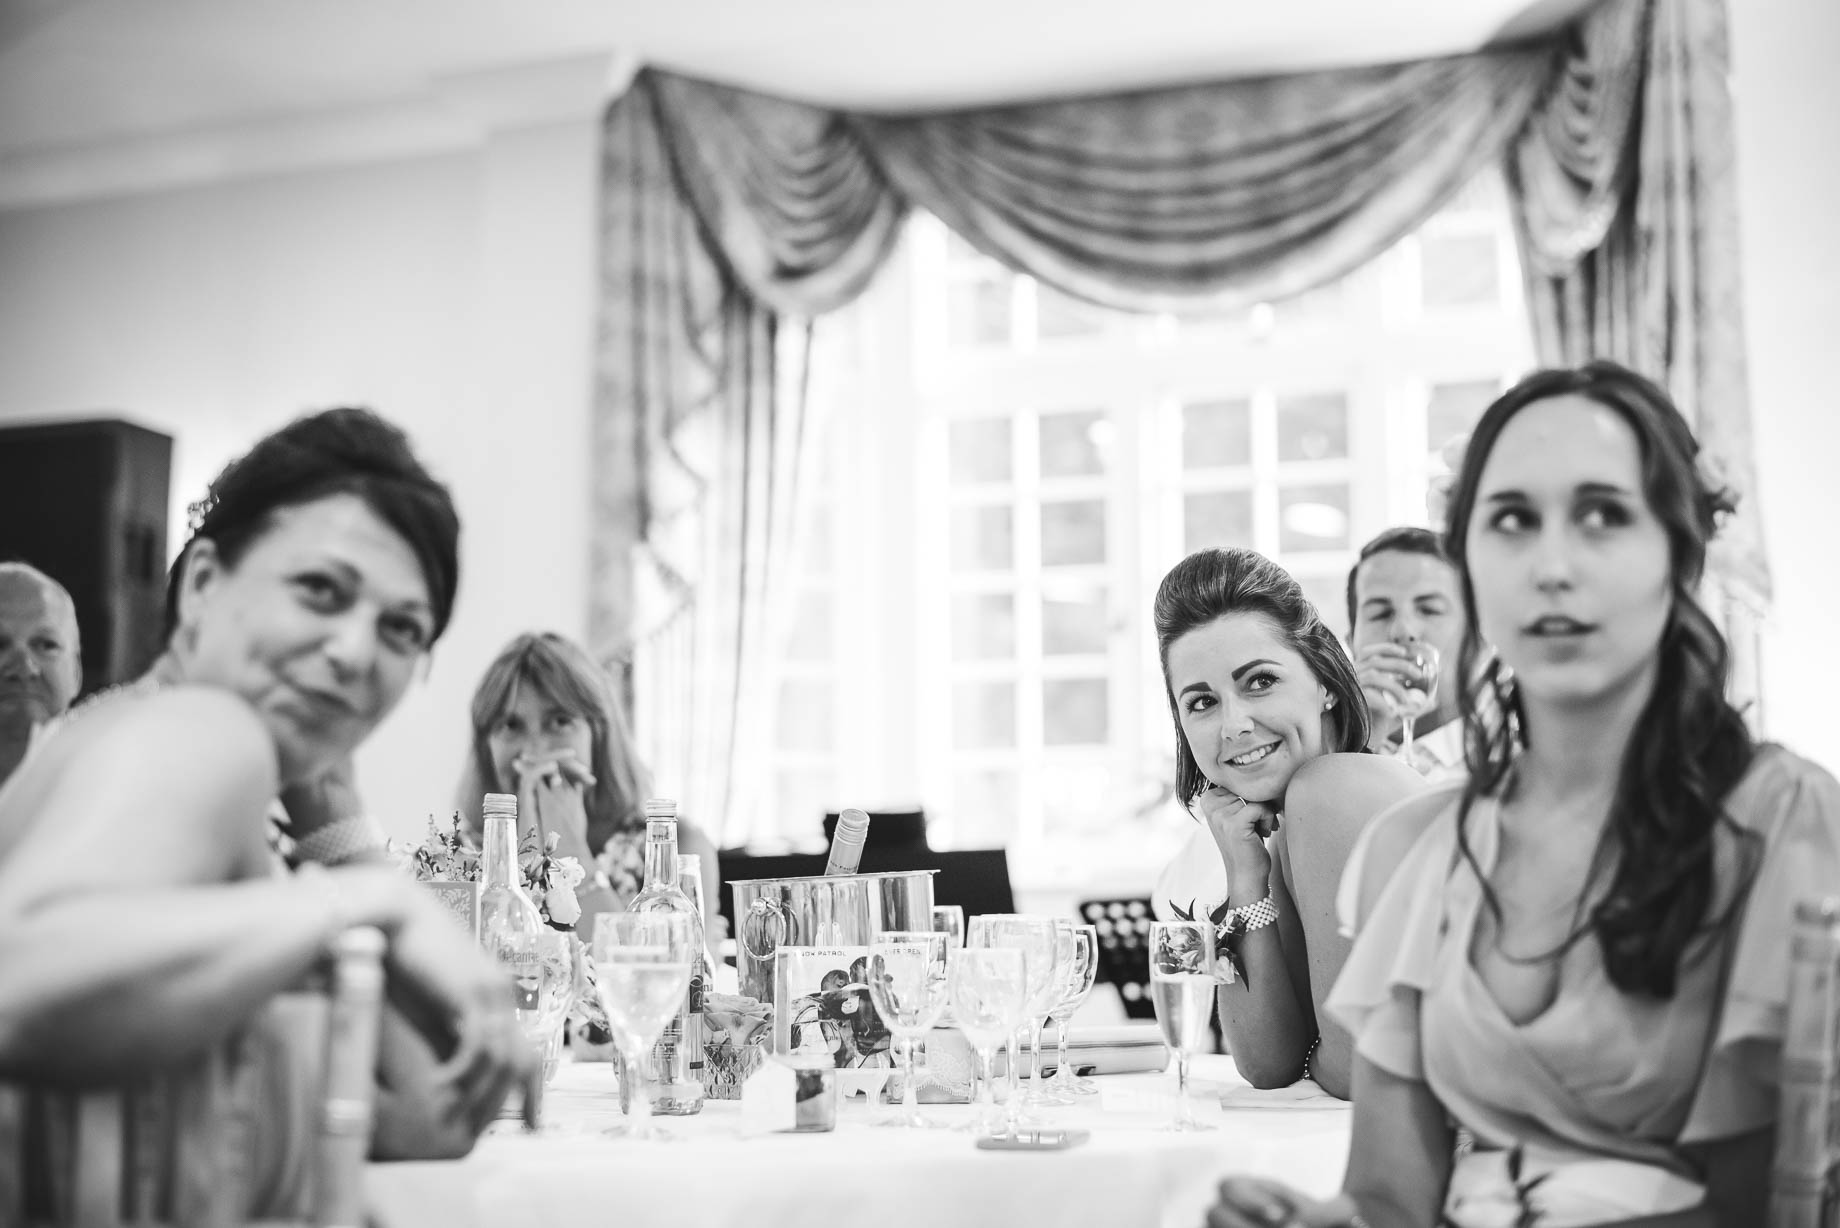 Luton Hoo wedding photography by Guy Collier Photography - Lauren and Gem (137 of 178)